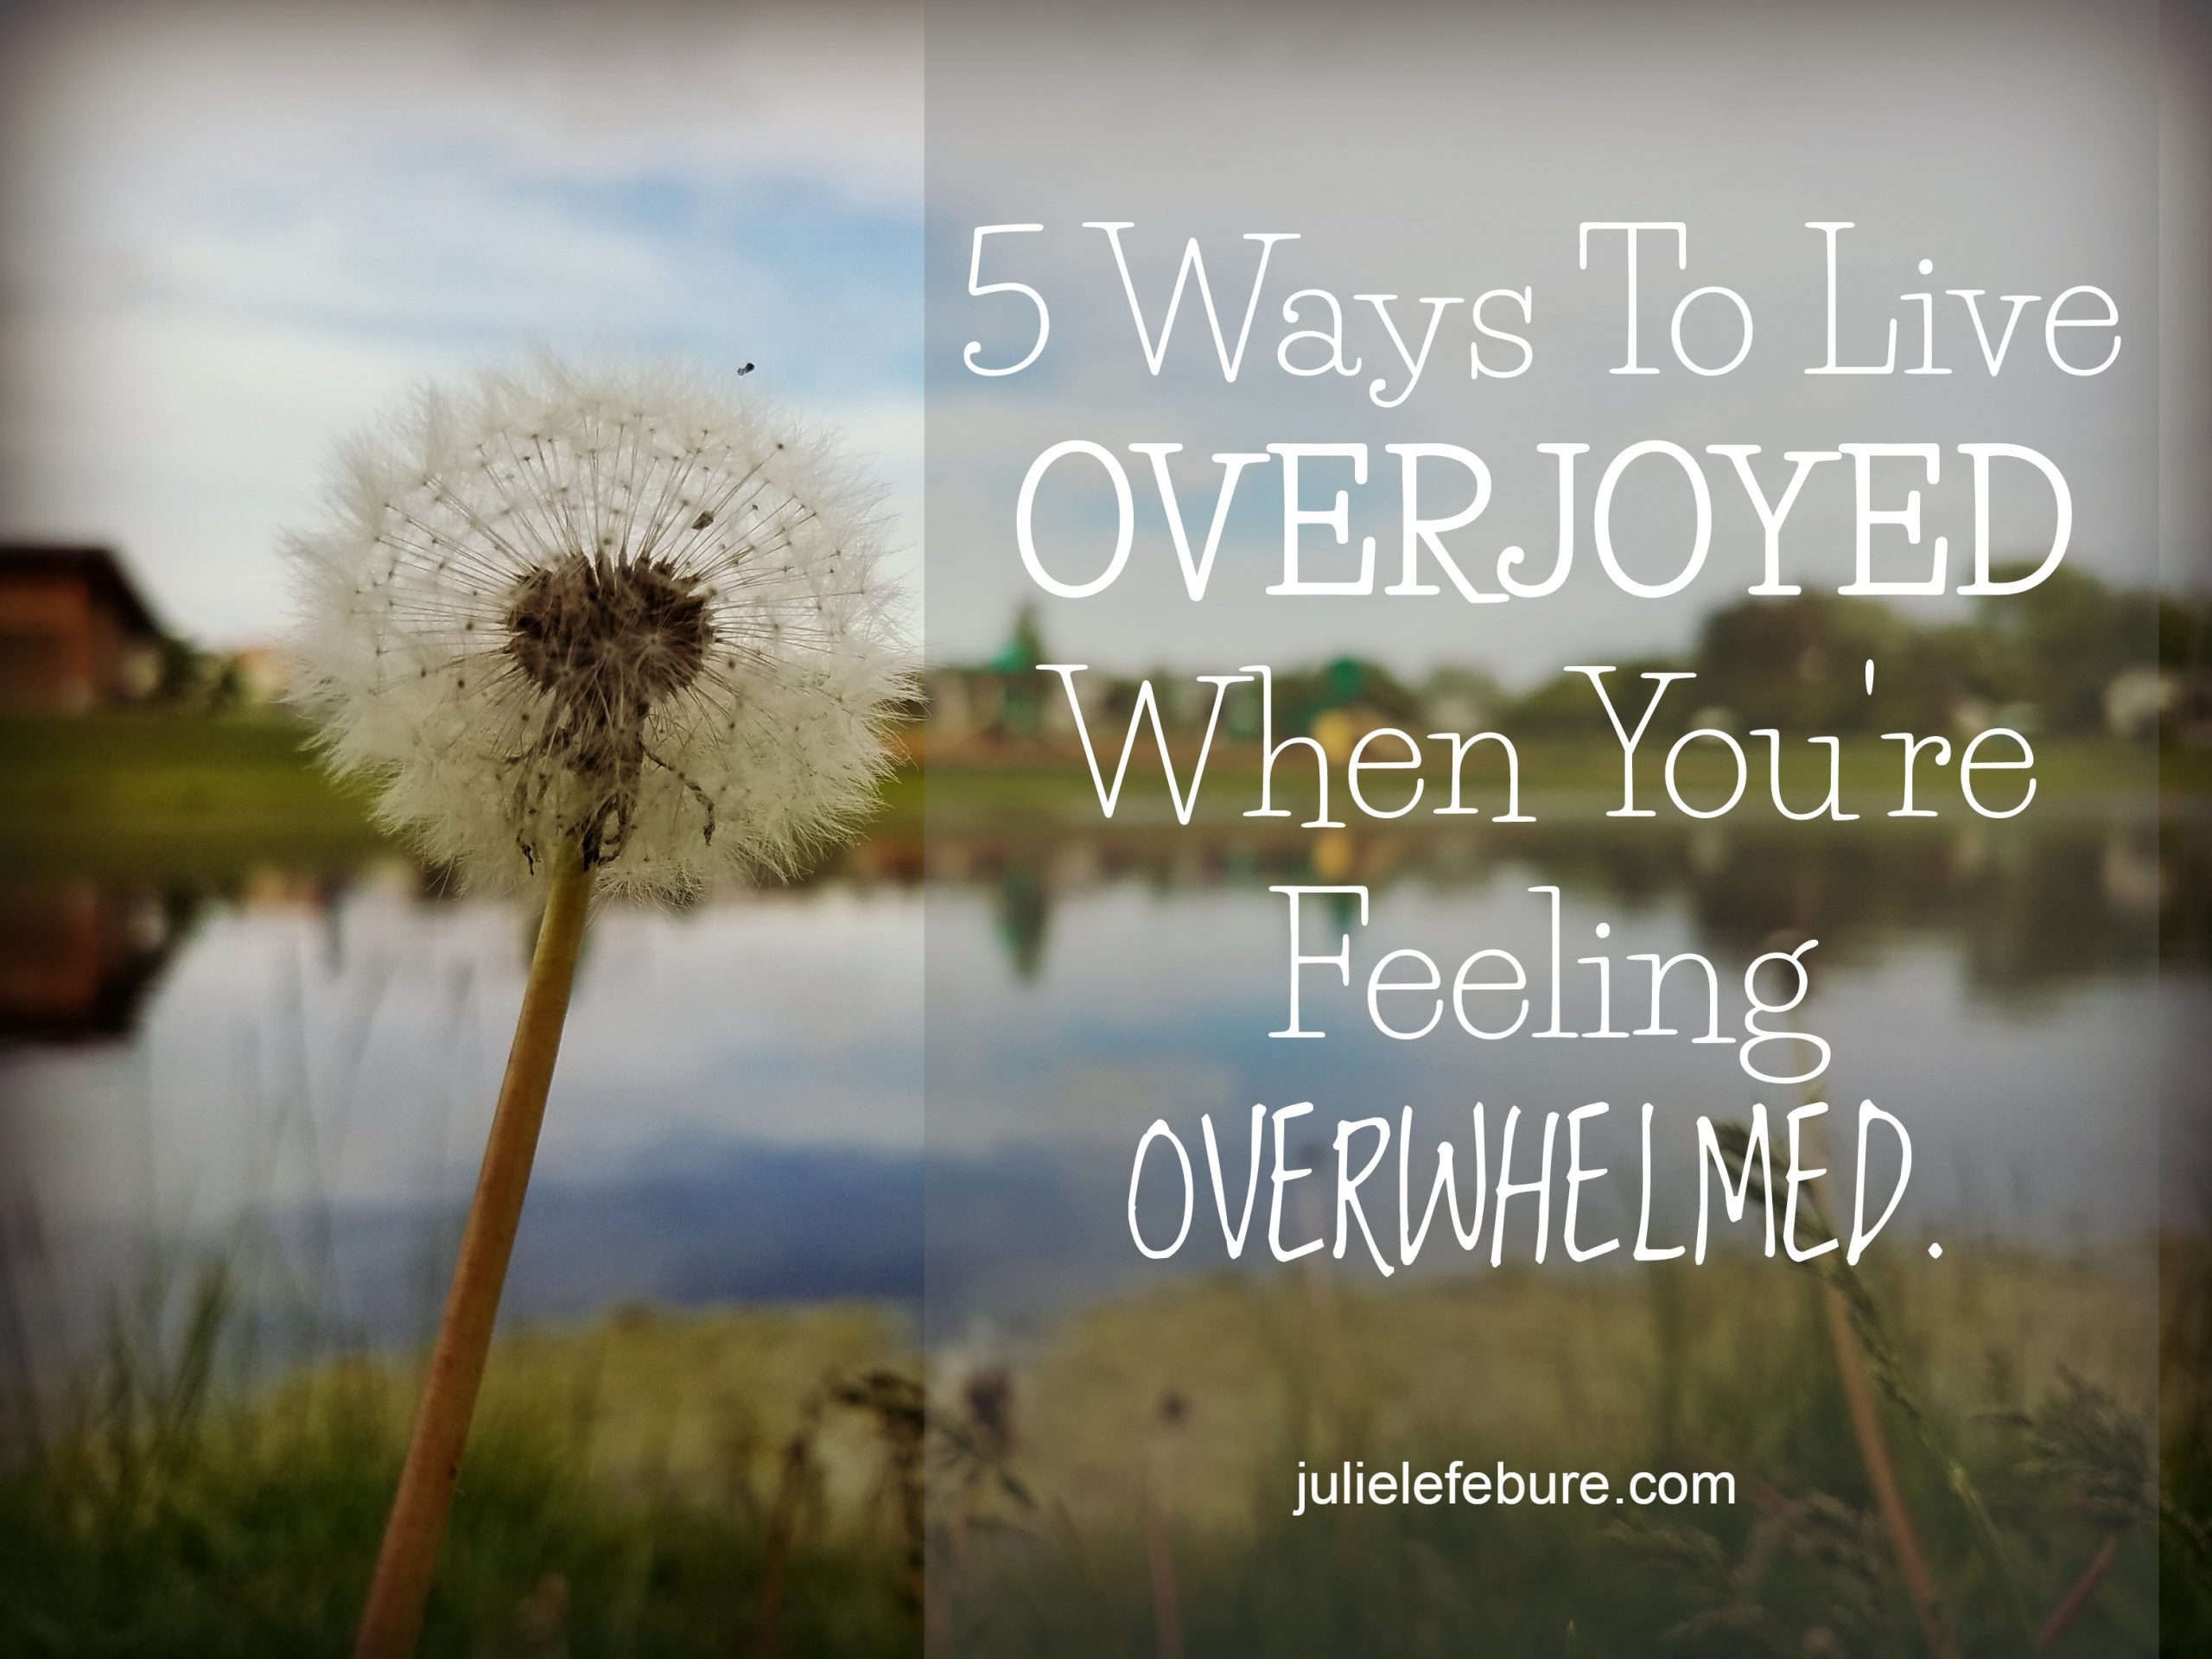 5 Ways To Live Overjoyed When You're Feeling Overwhelmed